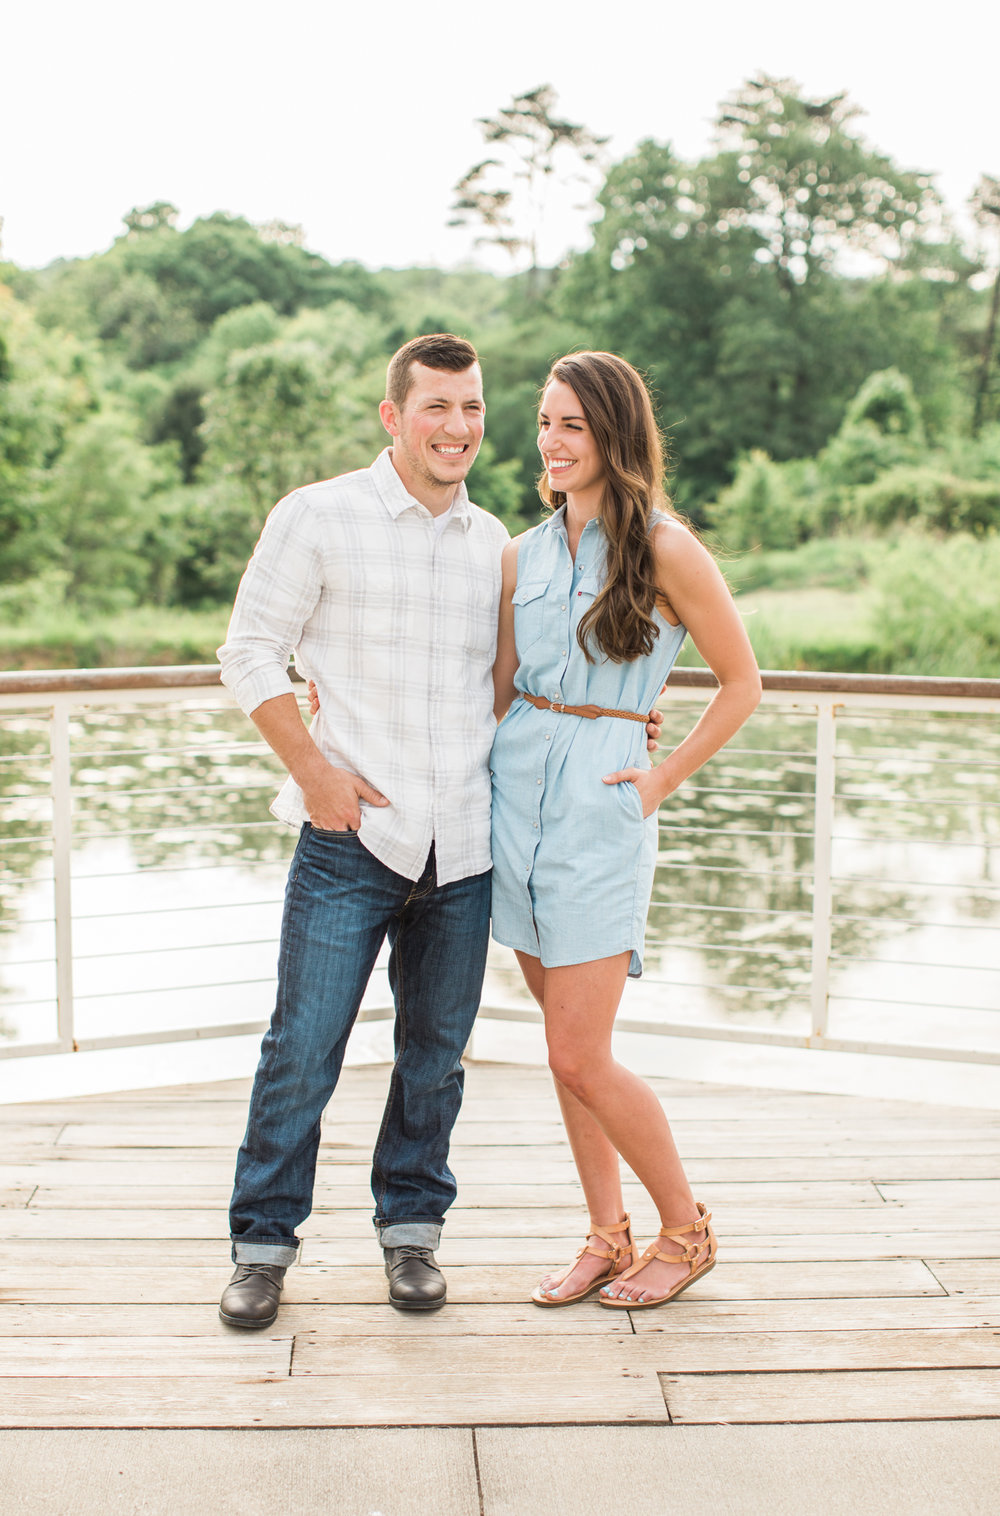 jeremiah_jenna_bernheim_engagement_film_photography-8957.jpg